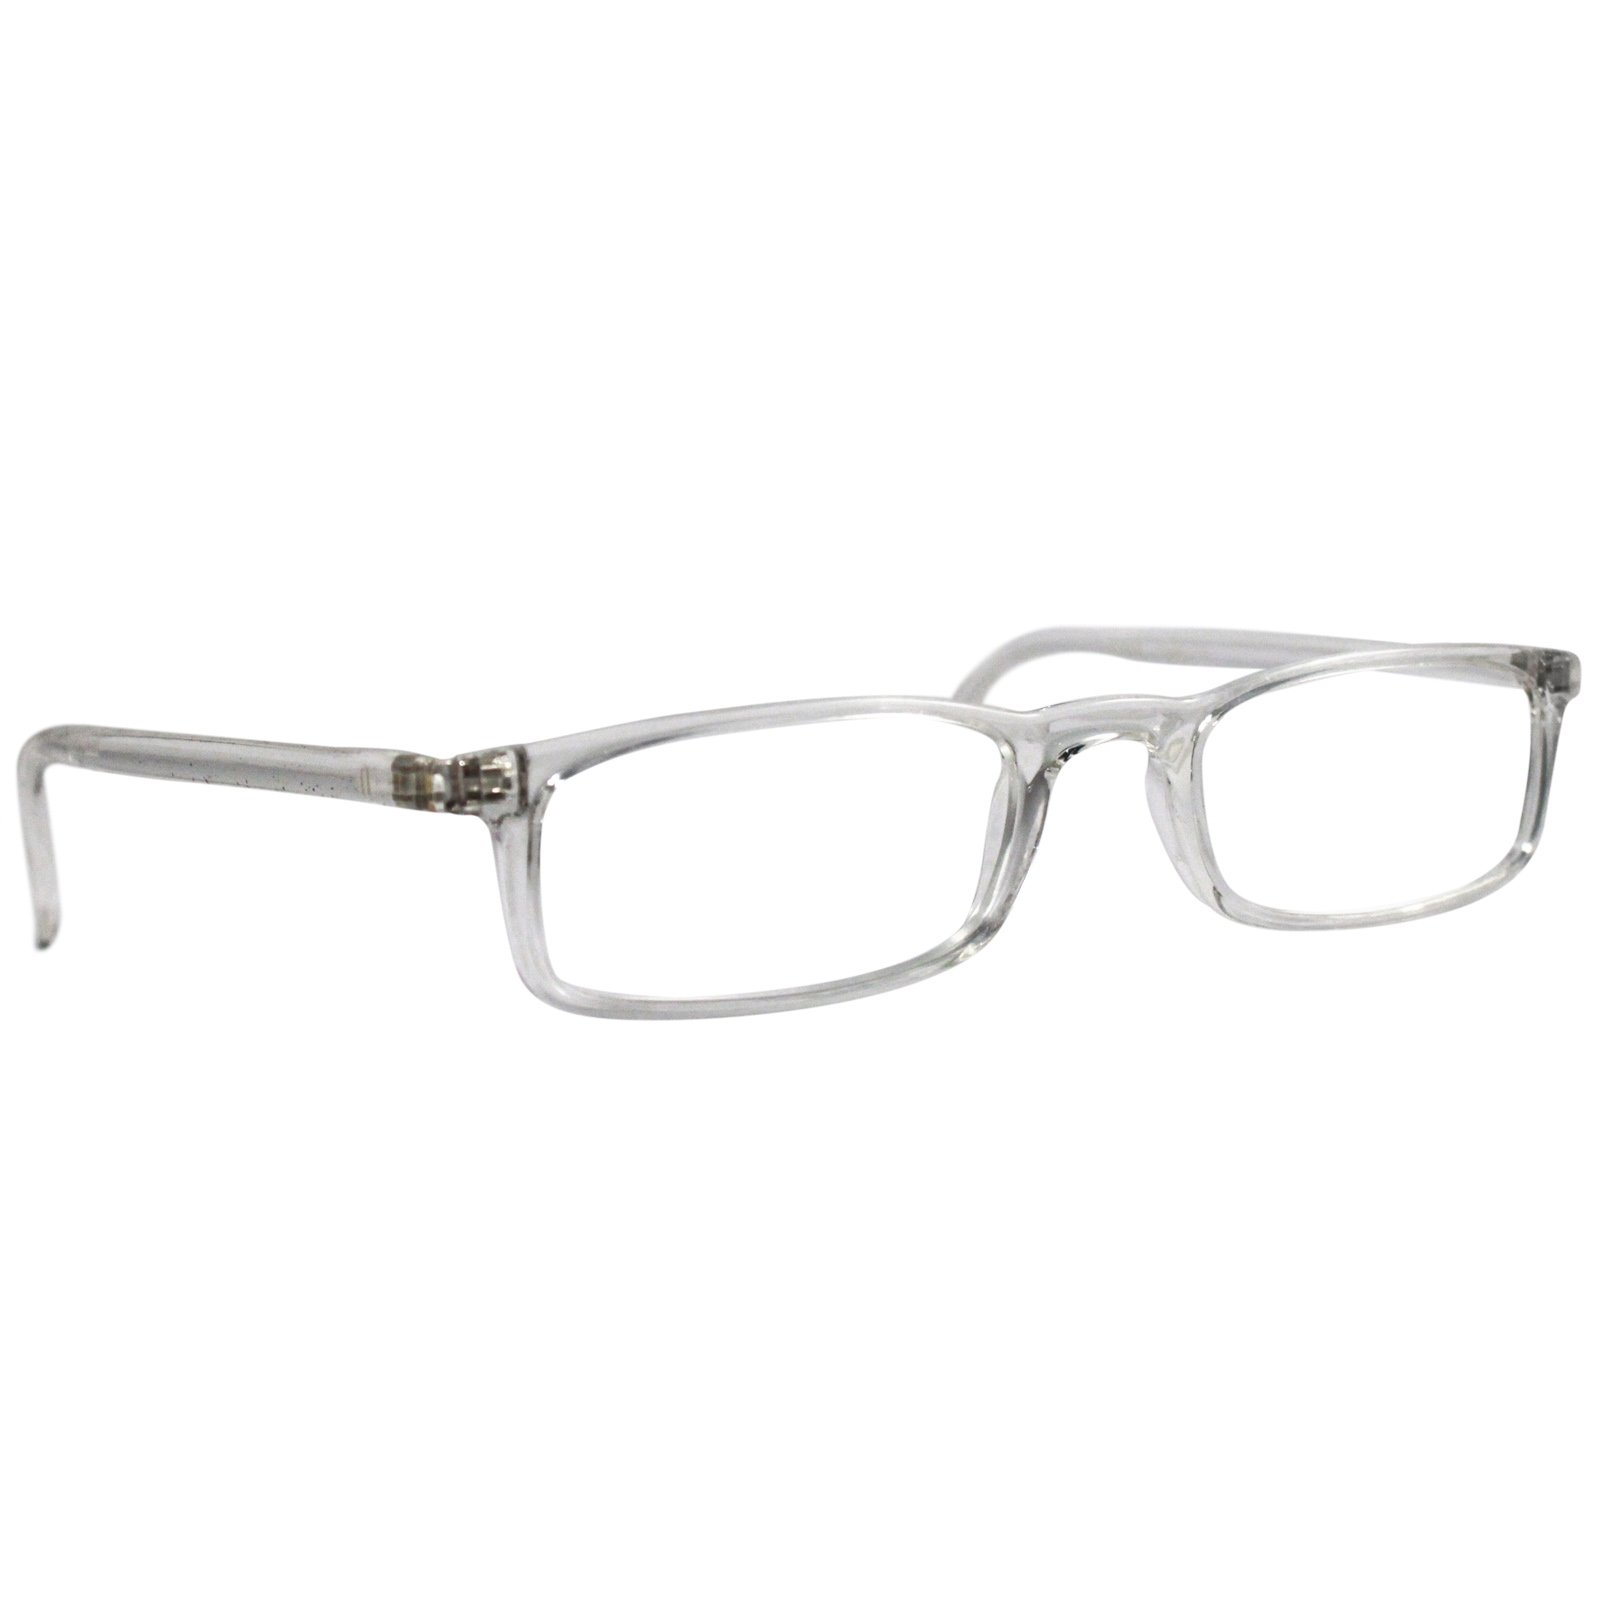 Nannini Quick 7.9 Lightweight Reader Glasses Crystal 1.0, Front View